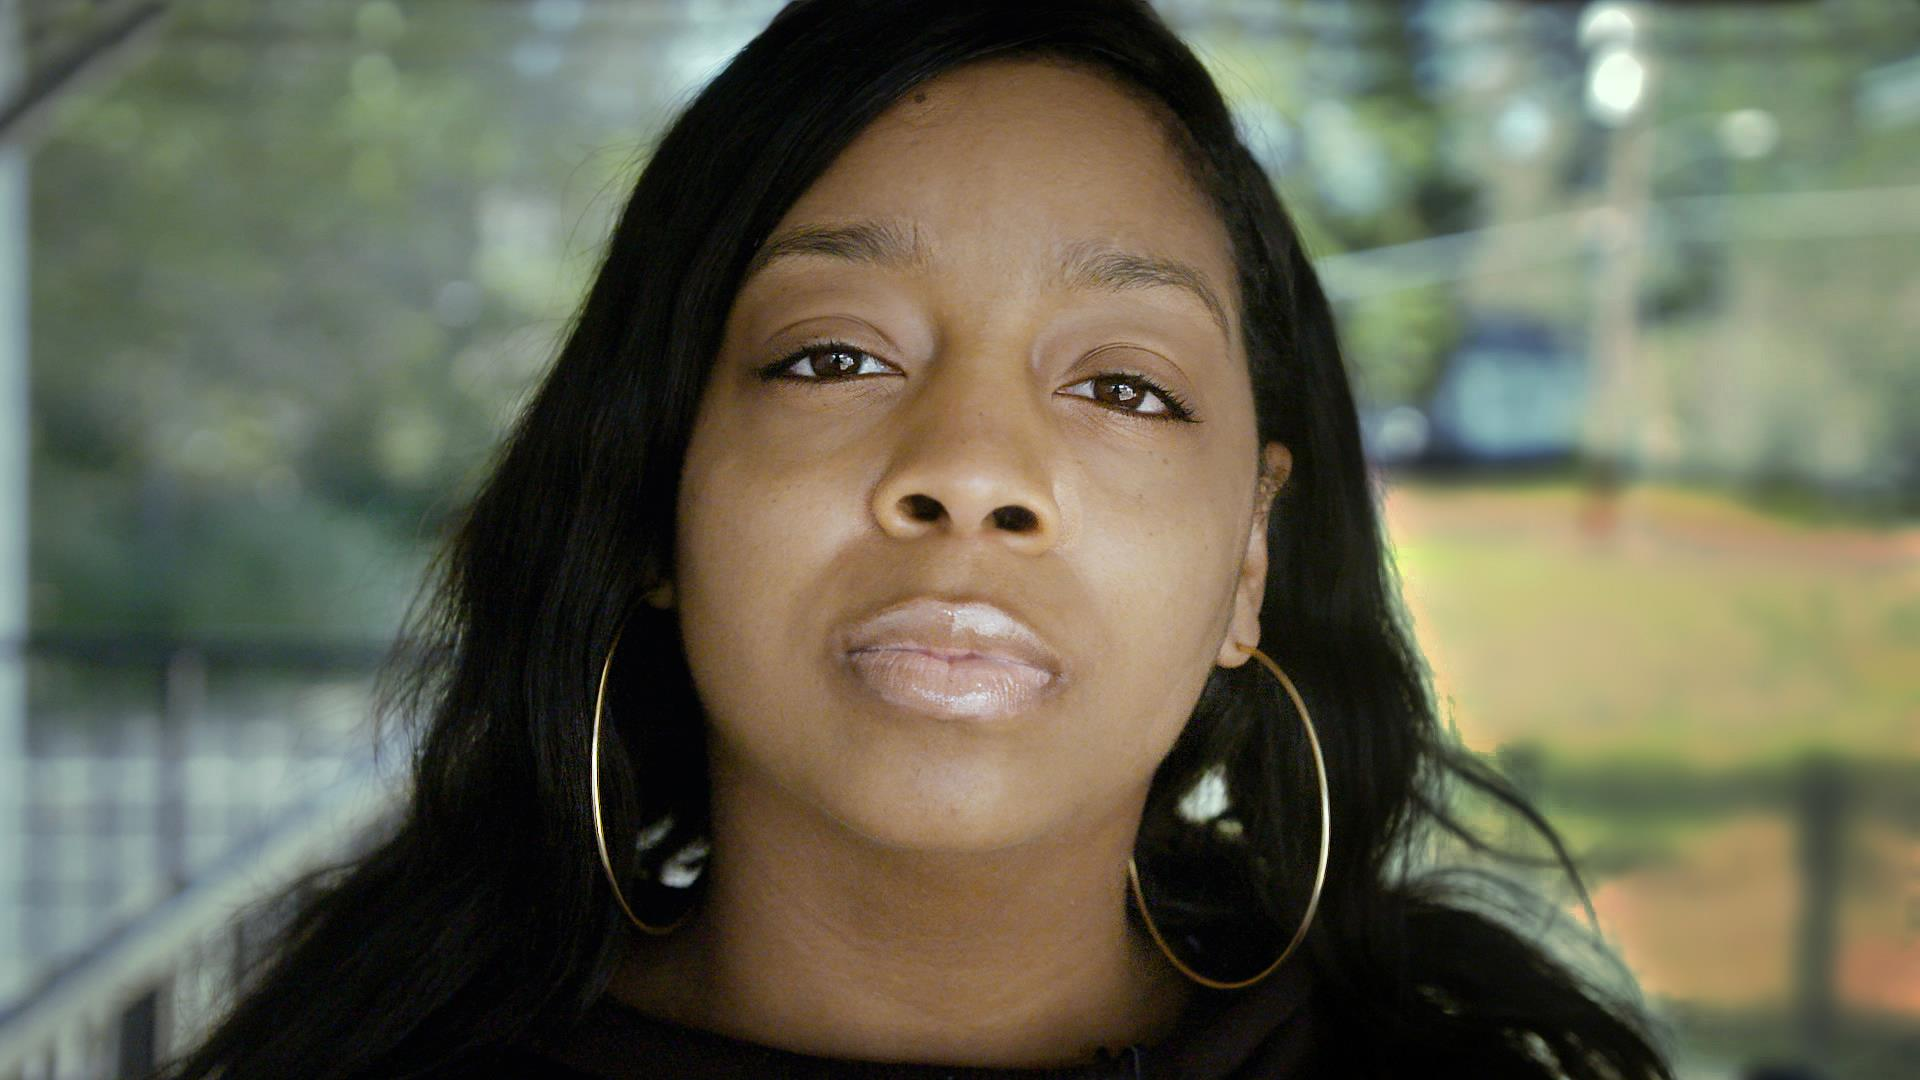 Program offers universal basic income to struggling black moms. But it comes at a cost.